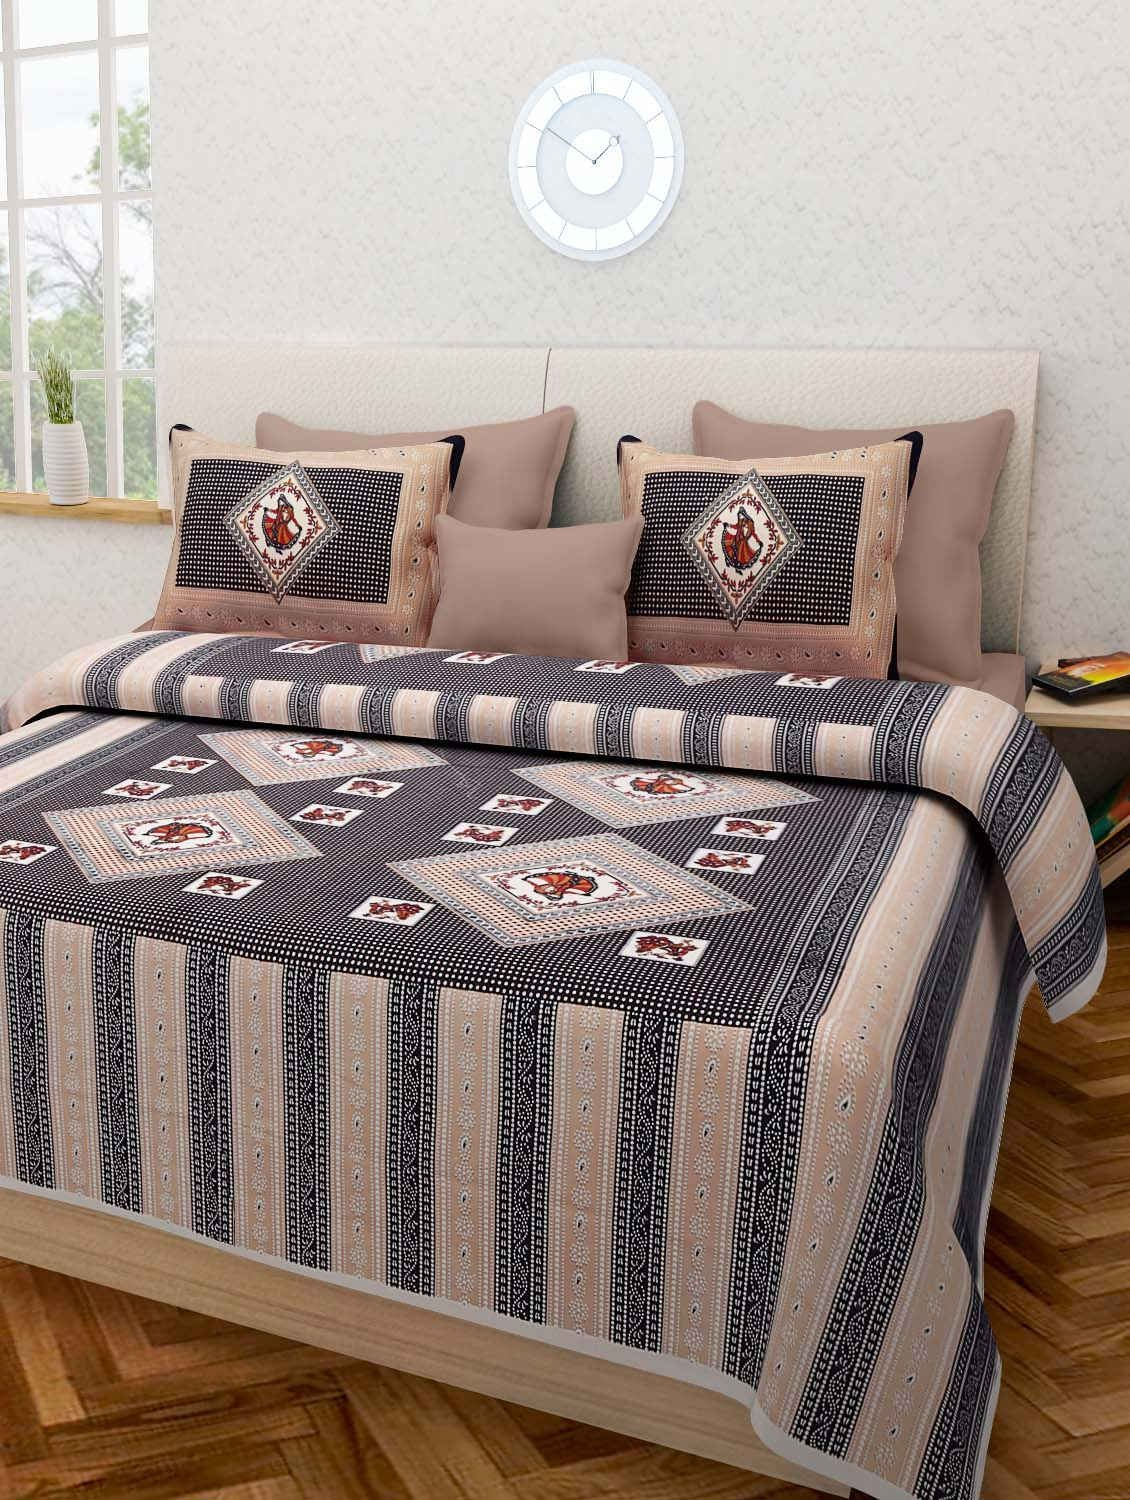 Superb Get Quotations · Double Bed Sheet Rajasthani Print Double Bed Sheets Hand  Screen Flower Block Printing 100% Cotton